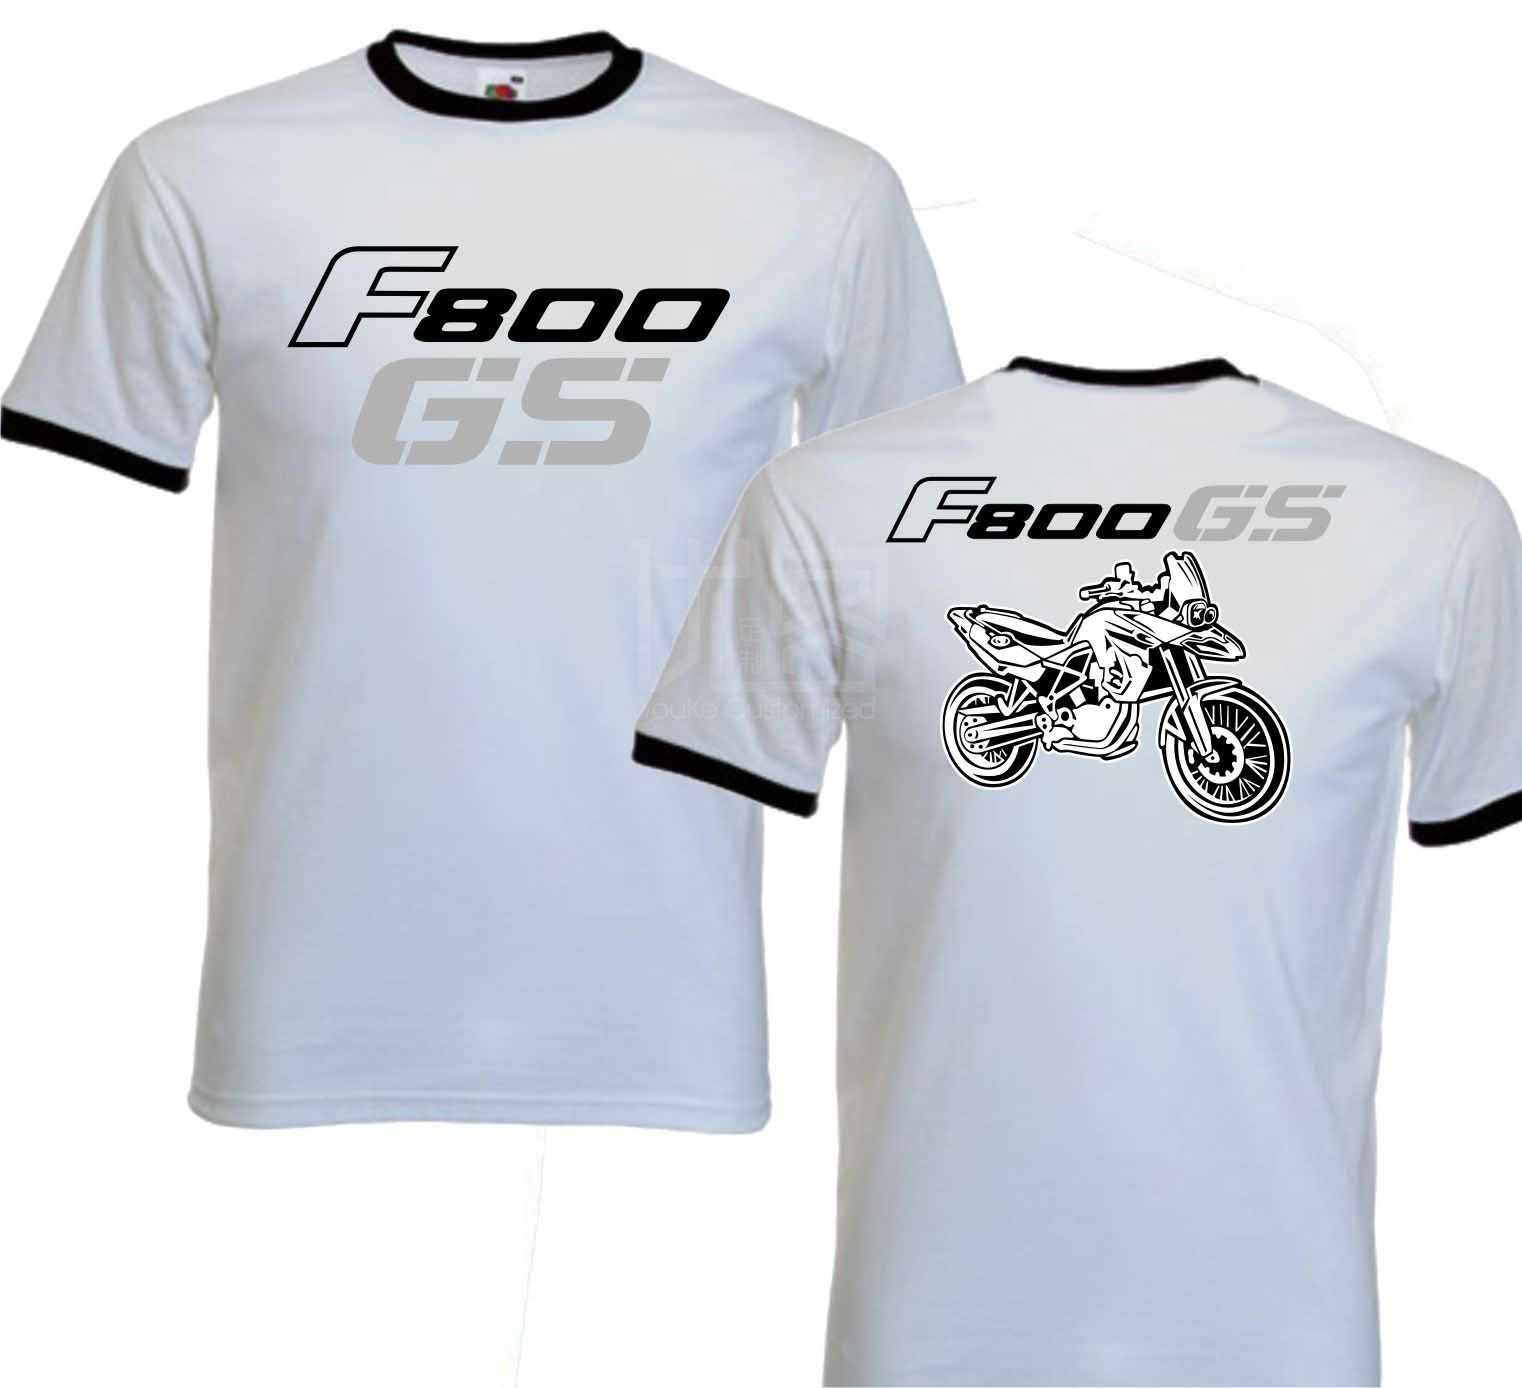 Men'S T-Shirt 2019 Newest 100% Cotton Brand New T-Shirts Moto Classic German Motorcycle Fans F 800 F800 <font><b>Gs</b></font> Tee <font><b>Tshirt</b></font> Homme image